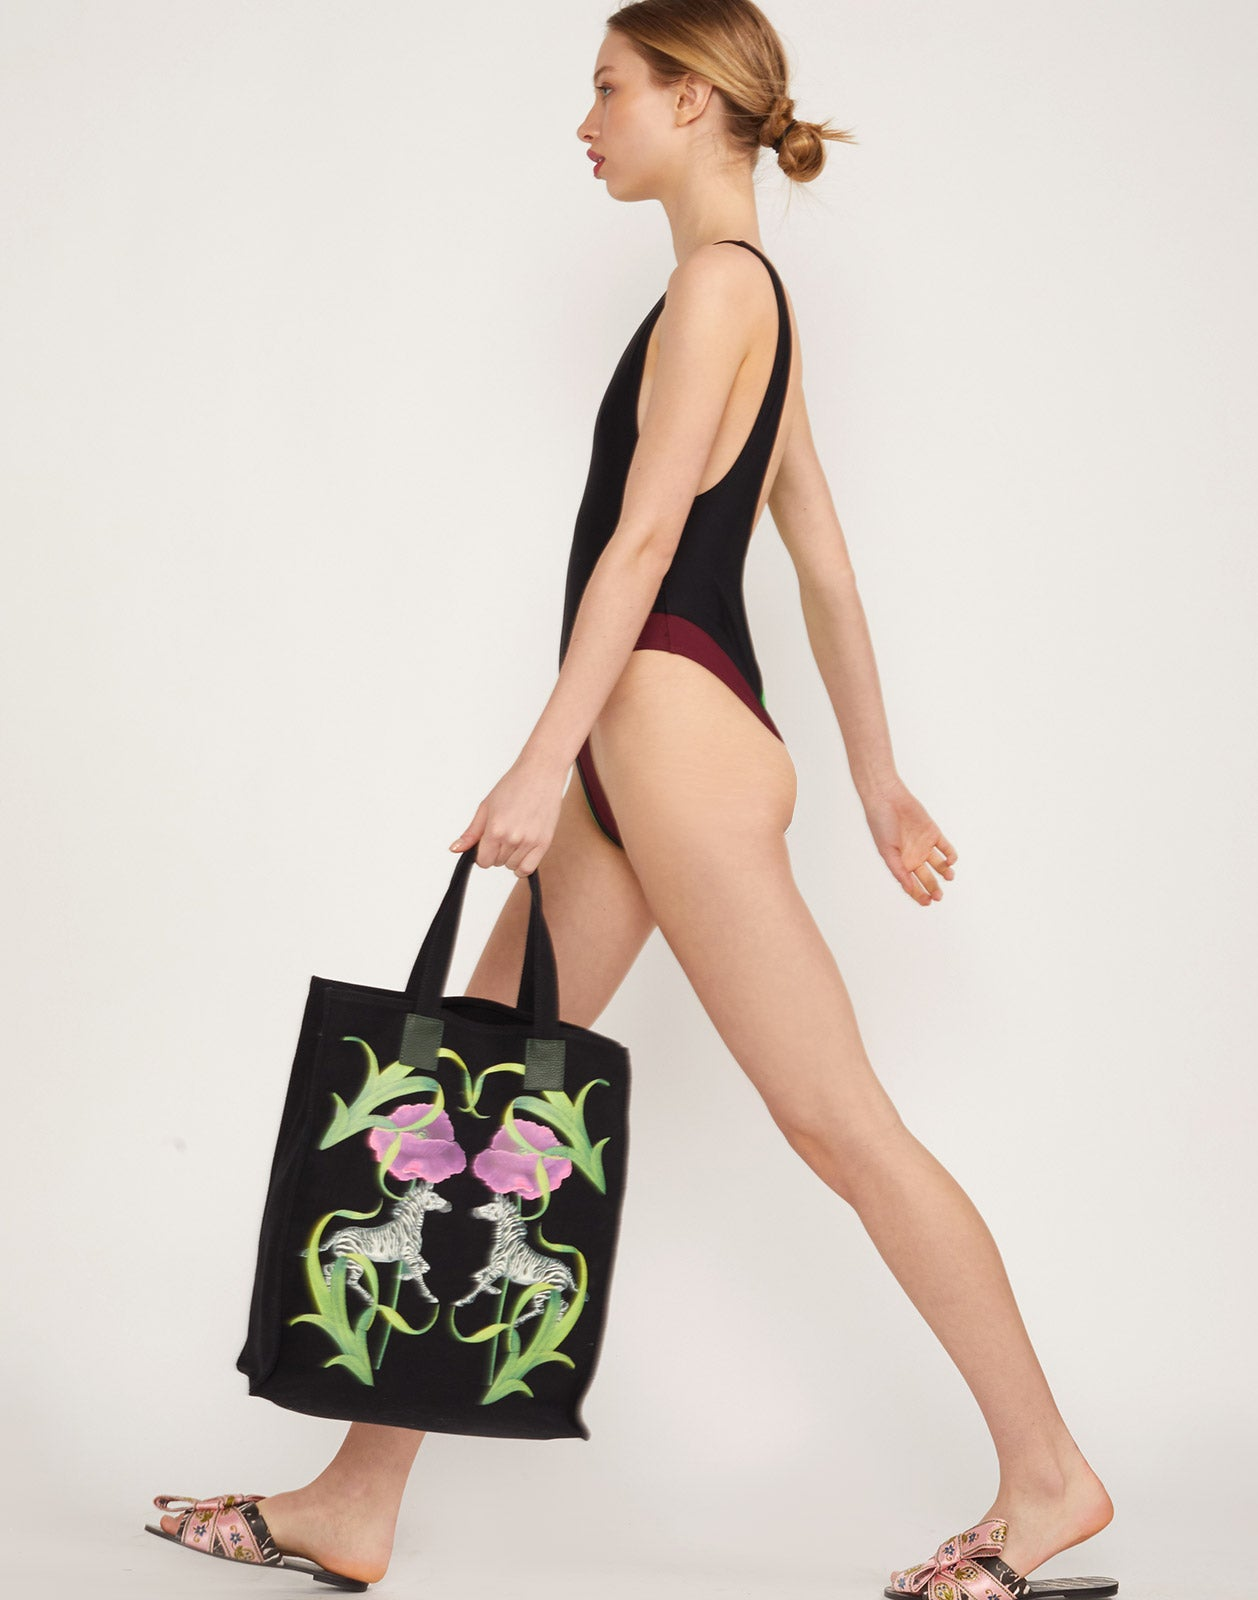 Alternate side view of model wearing Heather Swimsuit